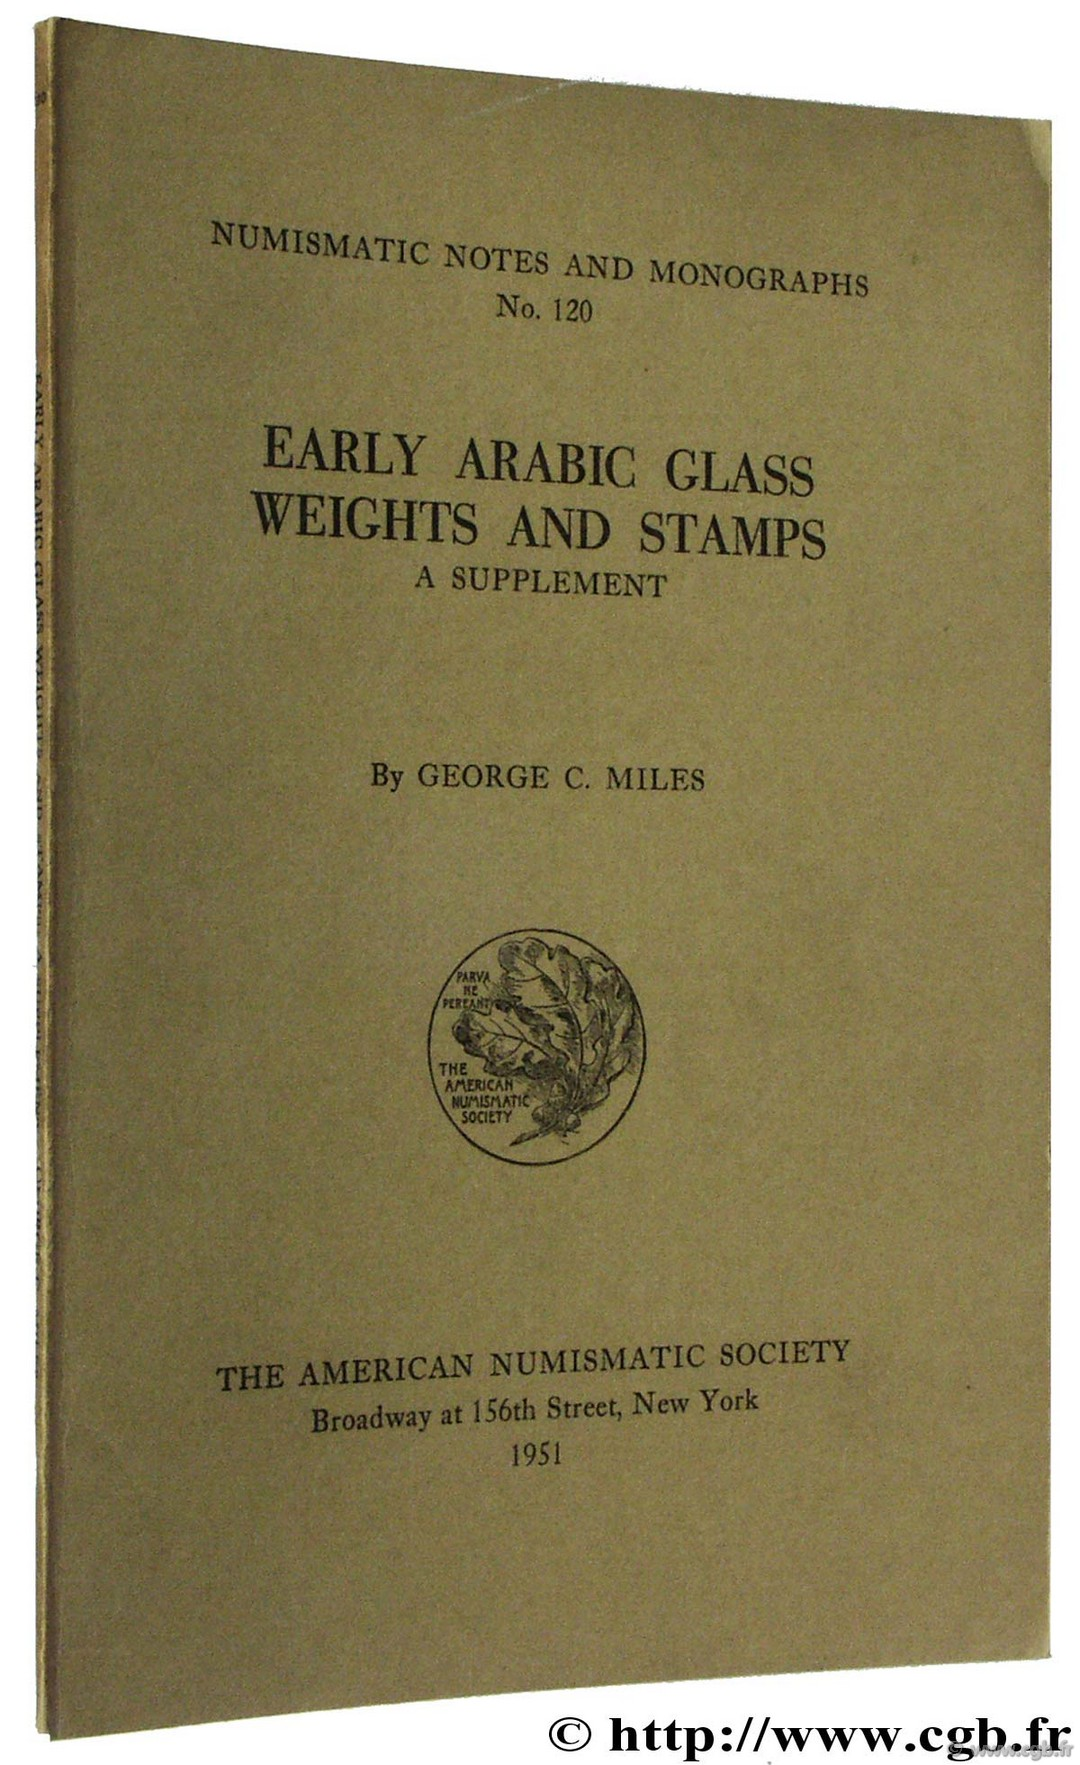 Early Arabic Glass Weights and Stamps, A supplement, NNM, n° 120 MILES G.-C.